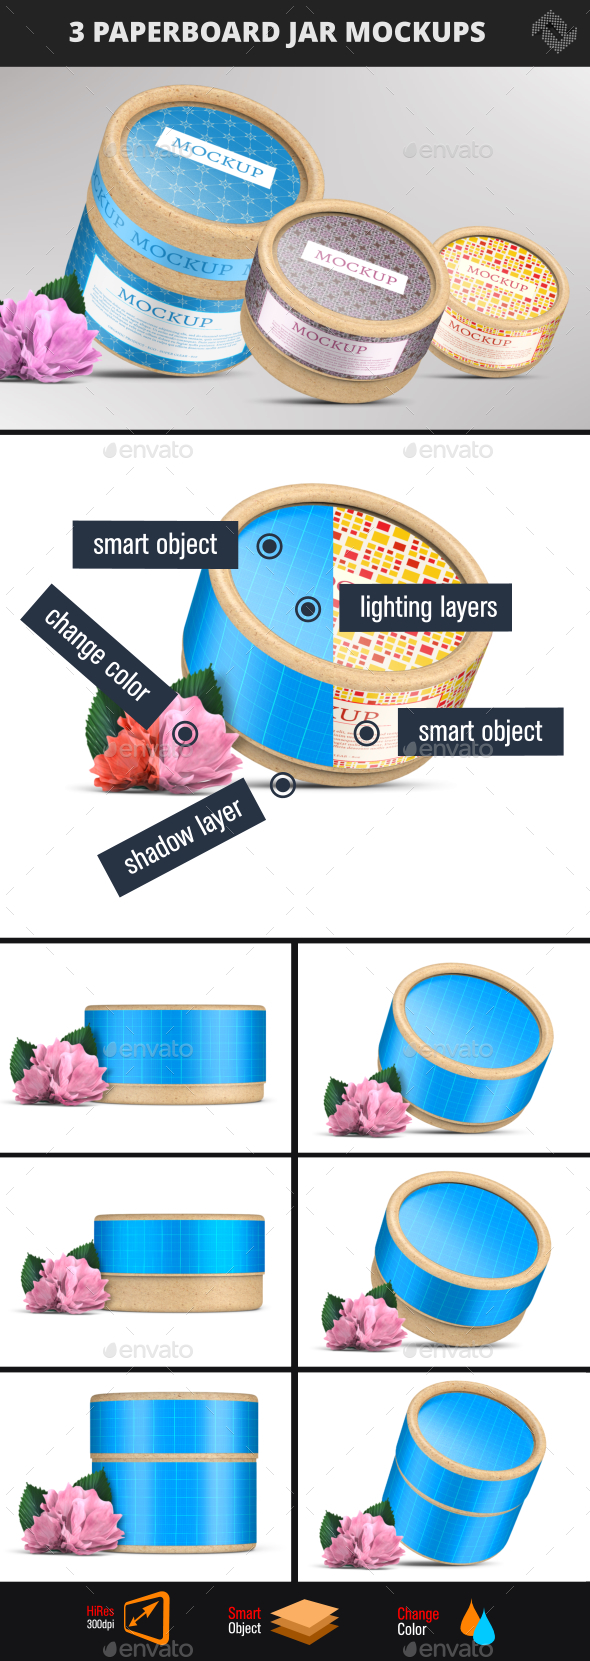 Paperboard Container Jar Flush Fit Cap Mockup - Packaging Product Mock-Ups